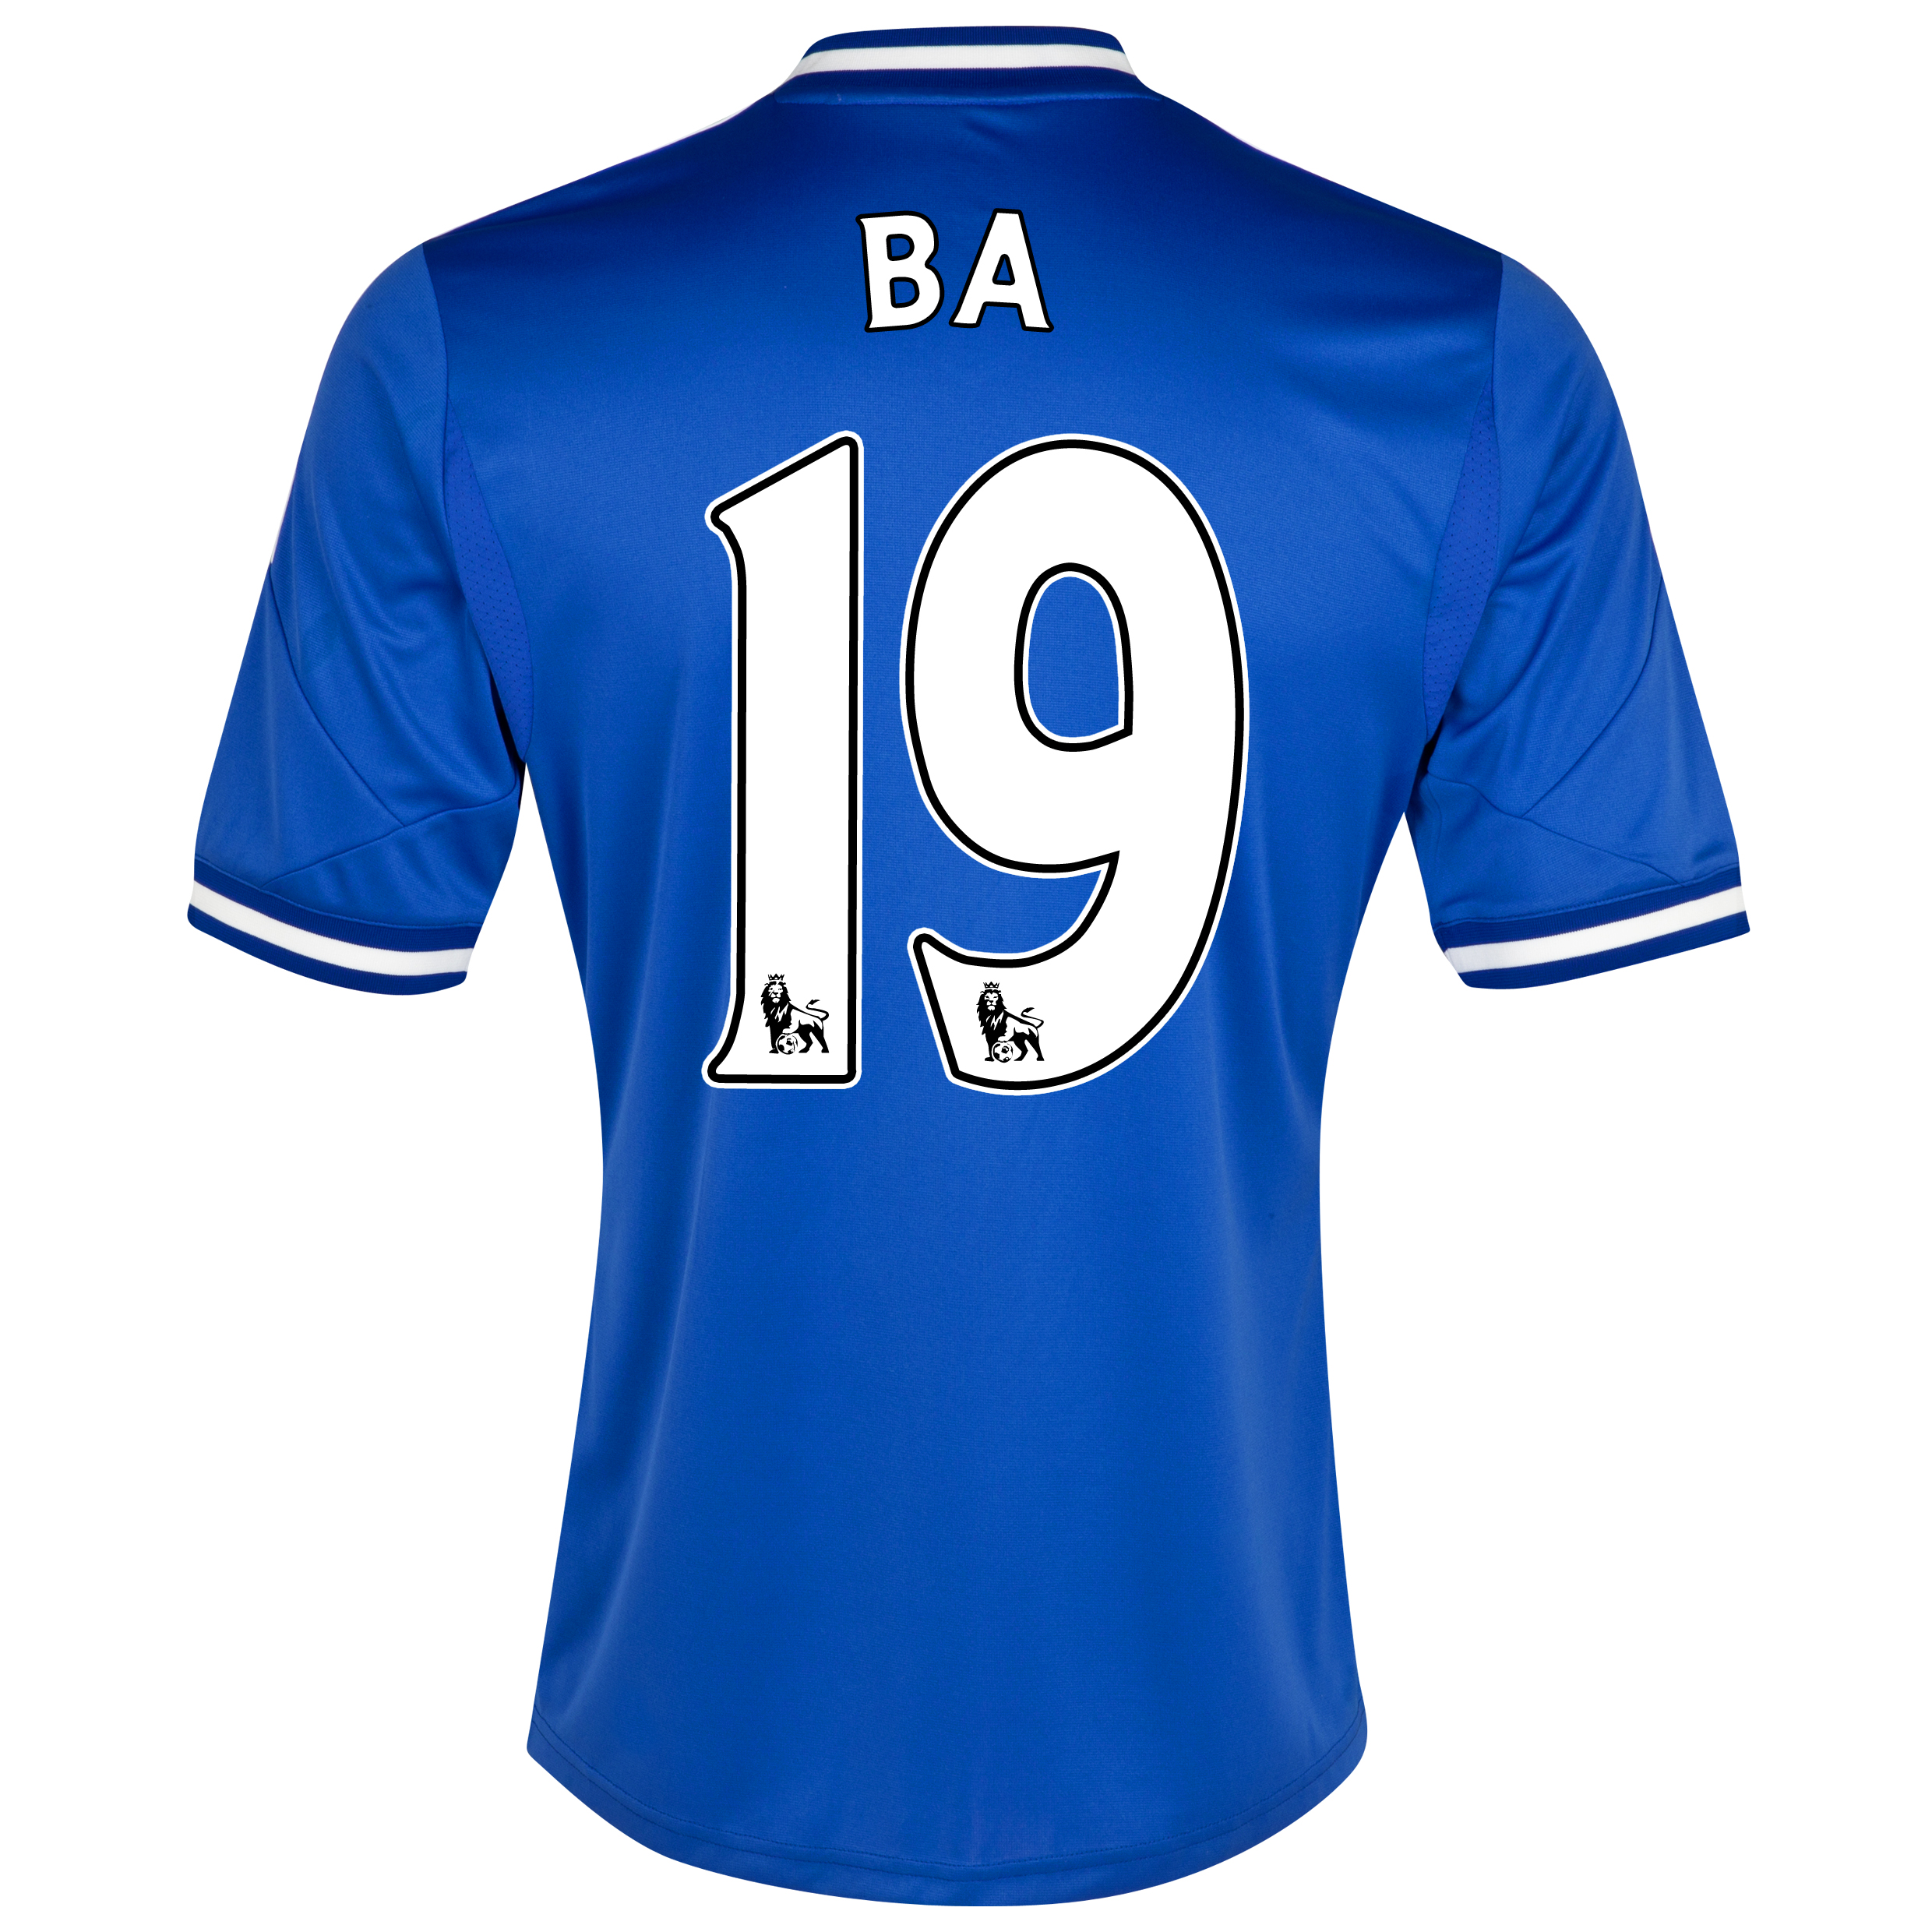 Chelsea Home Shirt 2013/14 with Ba 19 printing